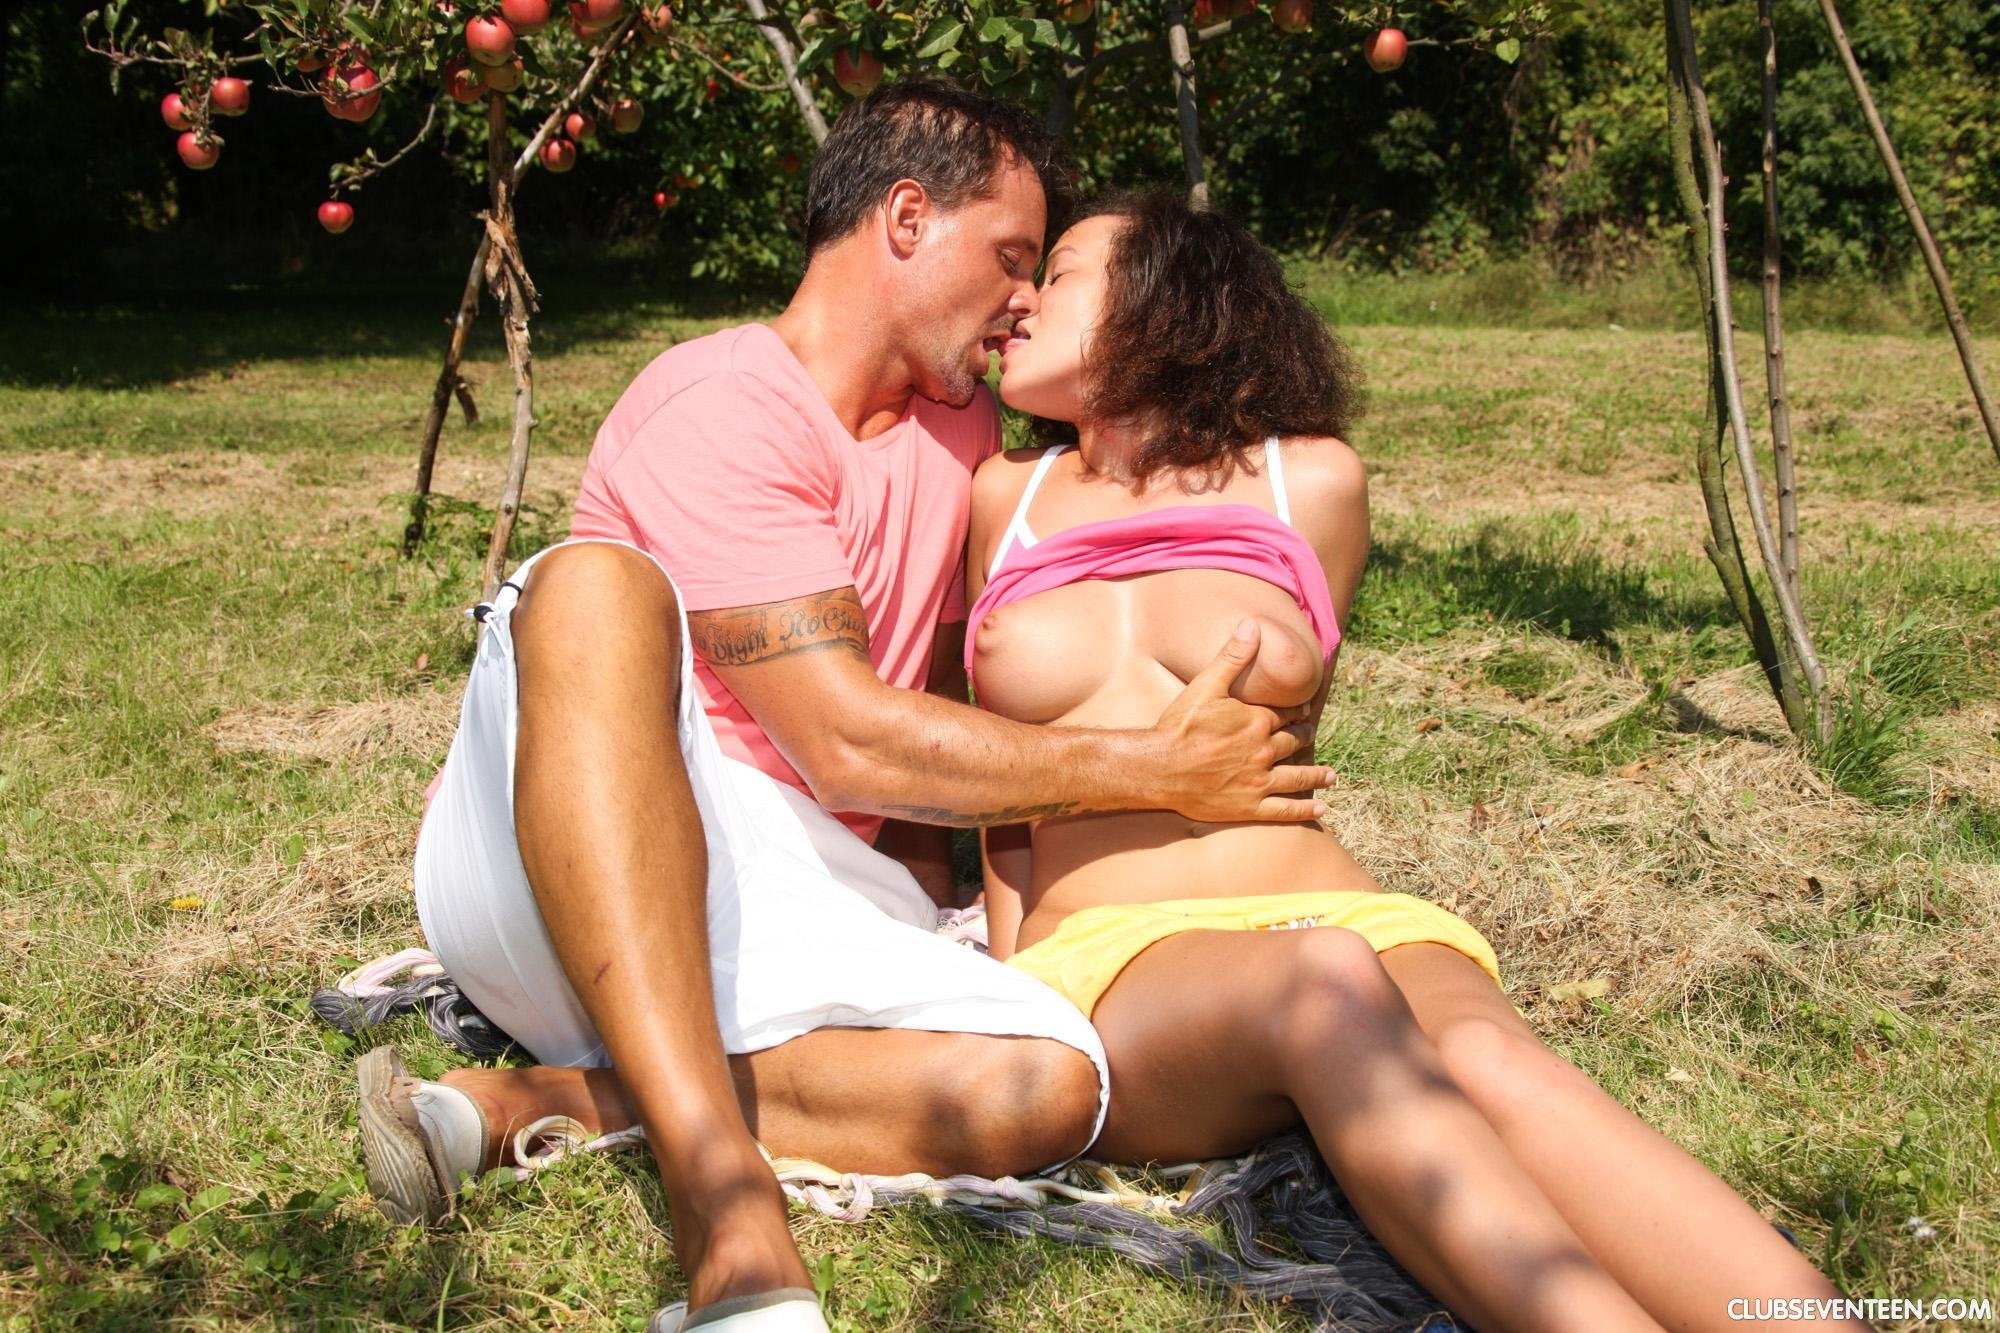 Wife sex with other man Angelica camacho House wife sex pictures